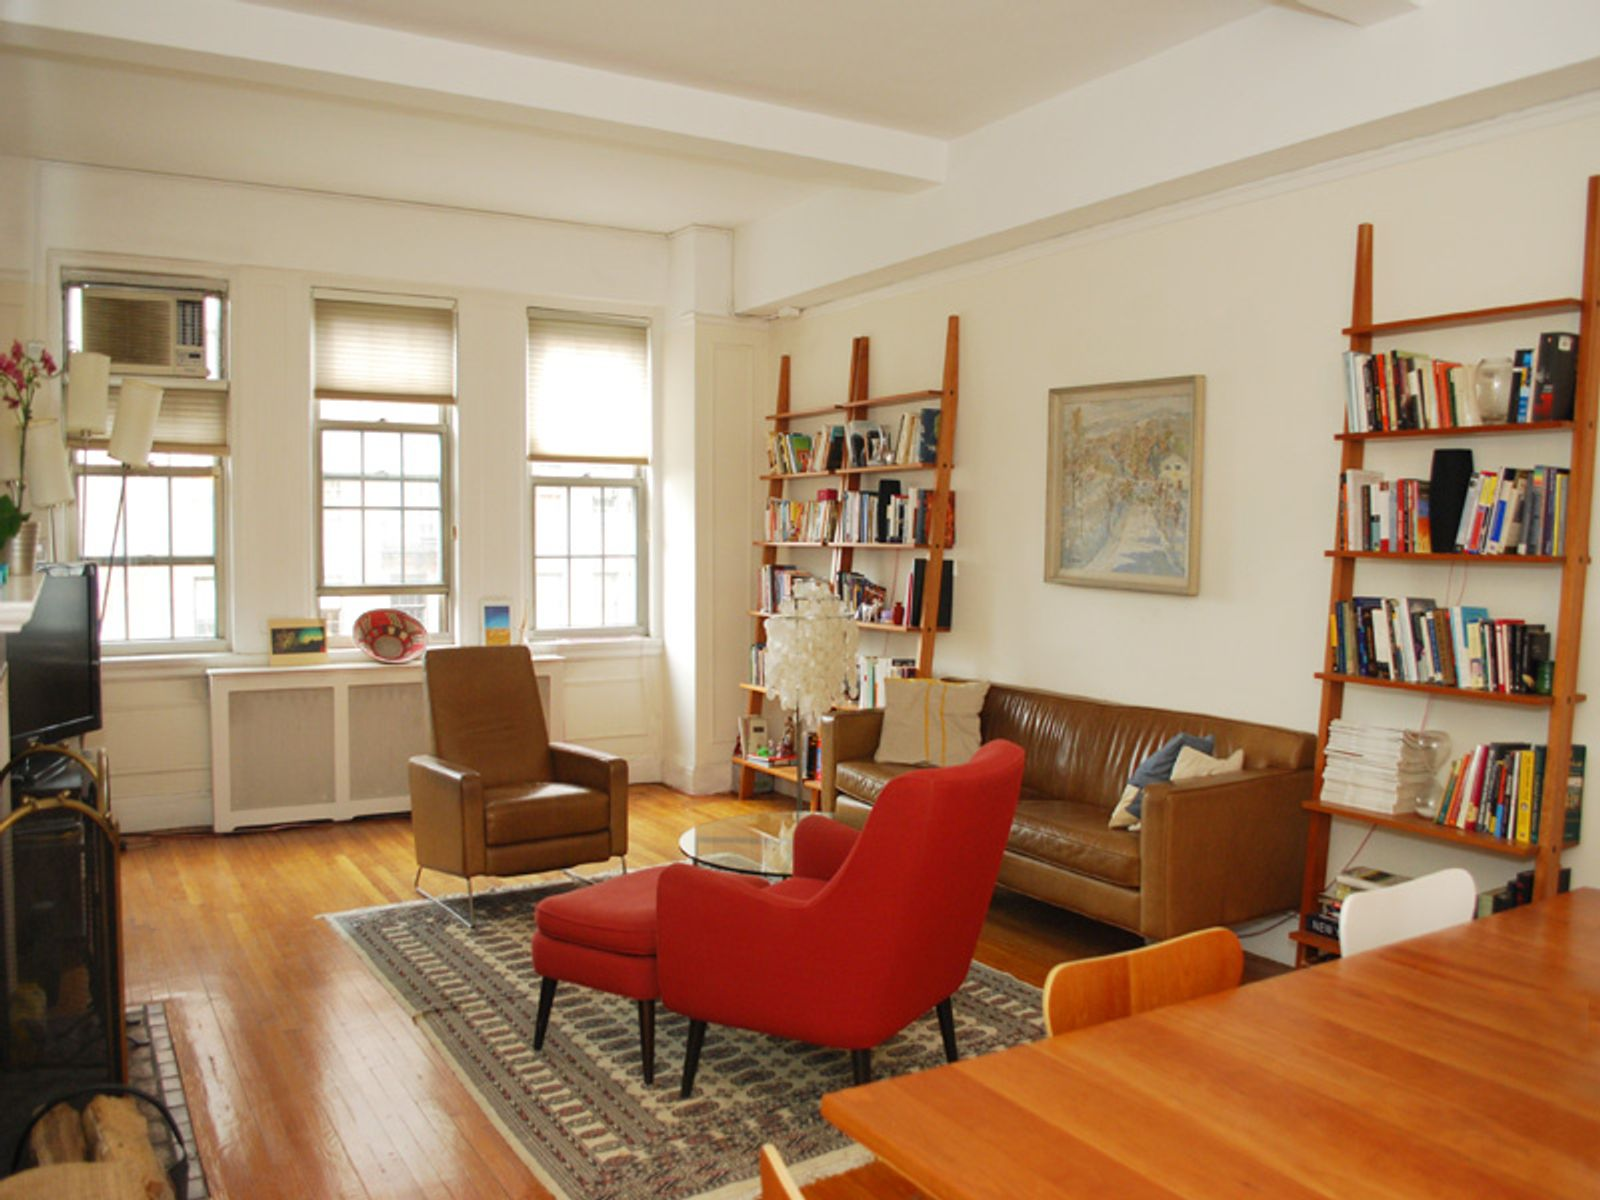 39 Fifth Ave, Apt 8A, New York NY Cooperative - New York City Real Estate